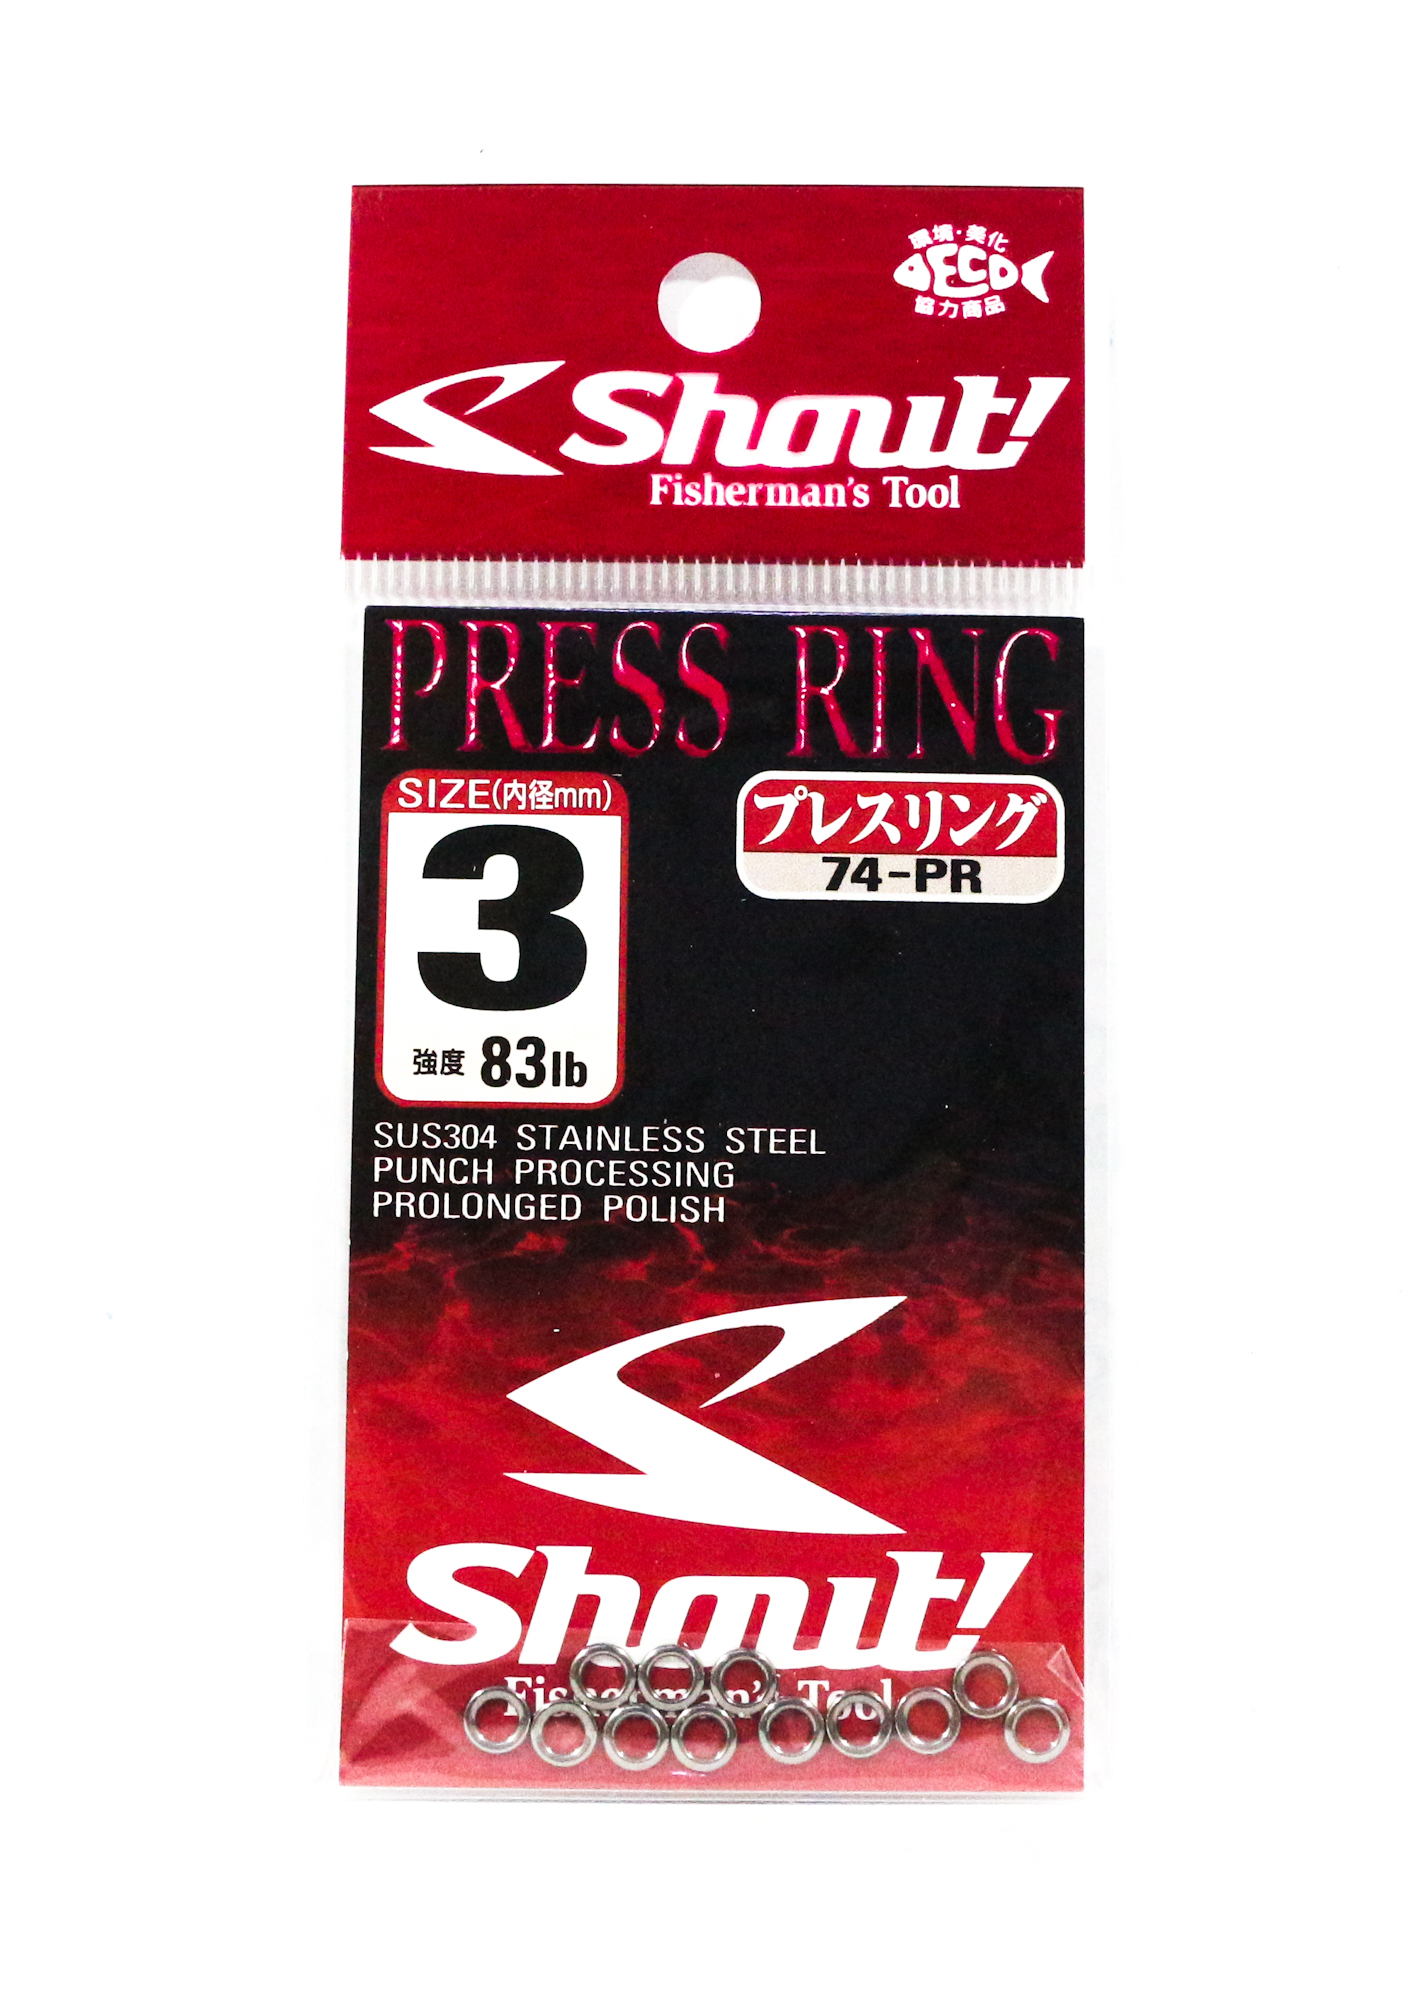 Shout 74-PR Press Ring Standard Solid Ring Size 3 mm (1877)